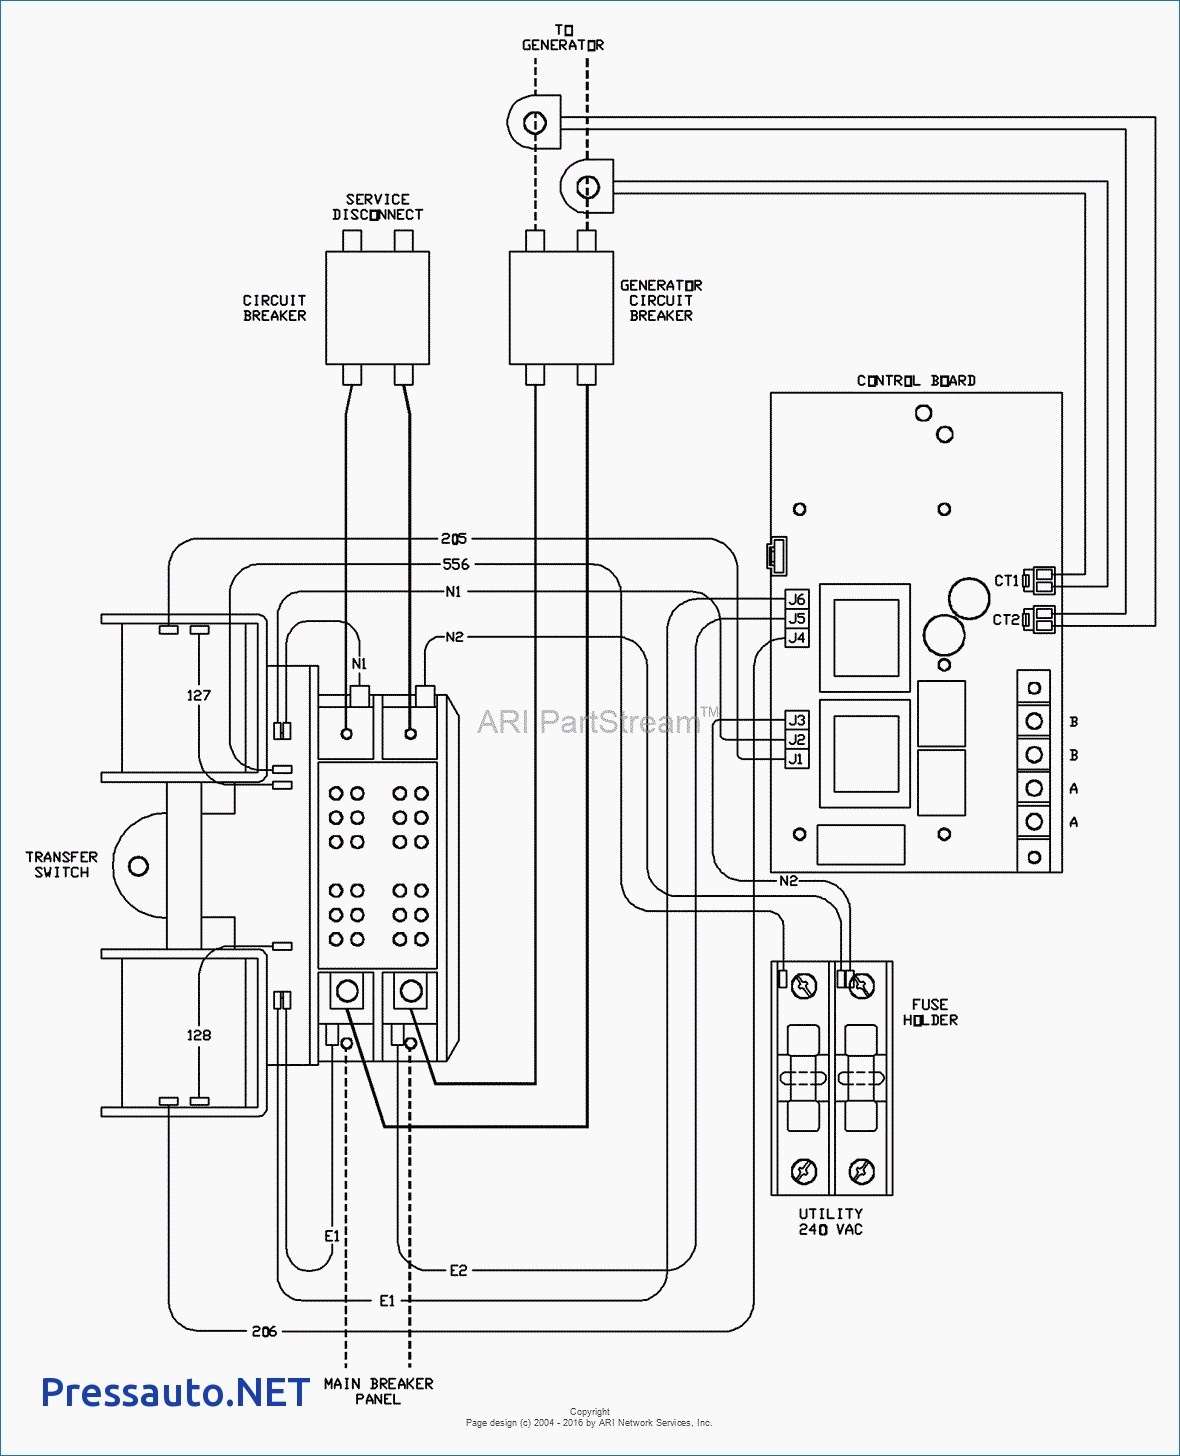 Reliance Transfer Switch Wiring Diagram Collection Diagrams Download Whole House Beautiful Generator Manual